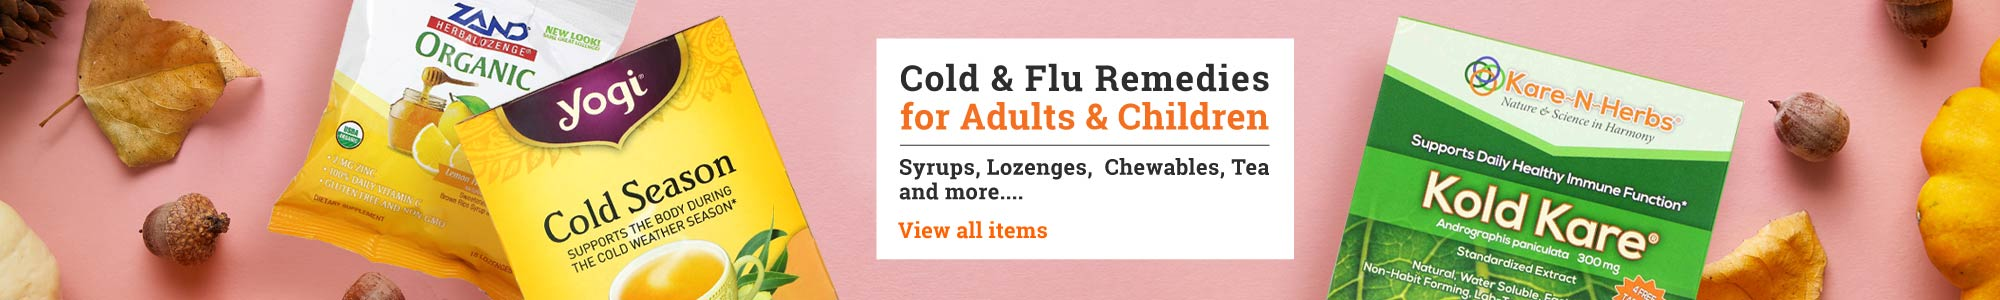 Cold & Flu Remedies for Adults & Children Syrups, Lozenges,  Chewables, Tea and more... View all items